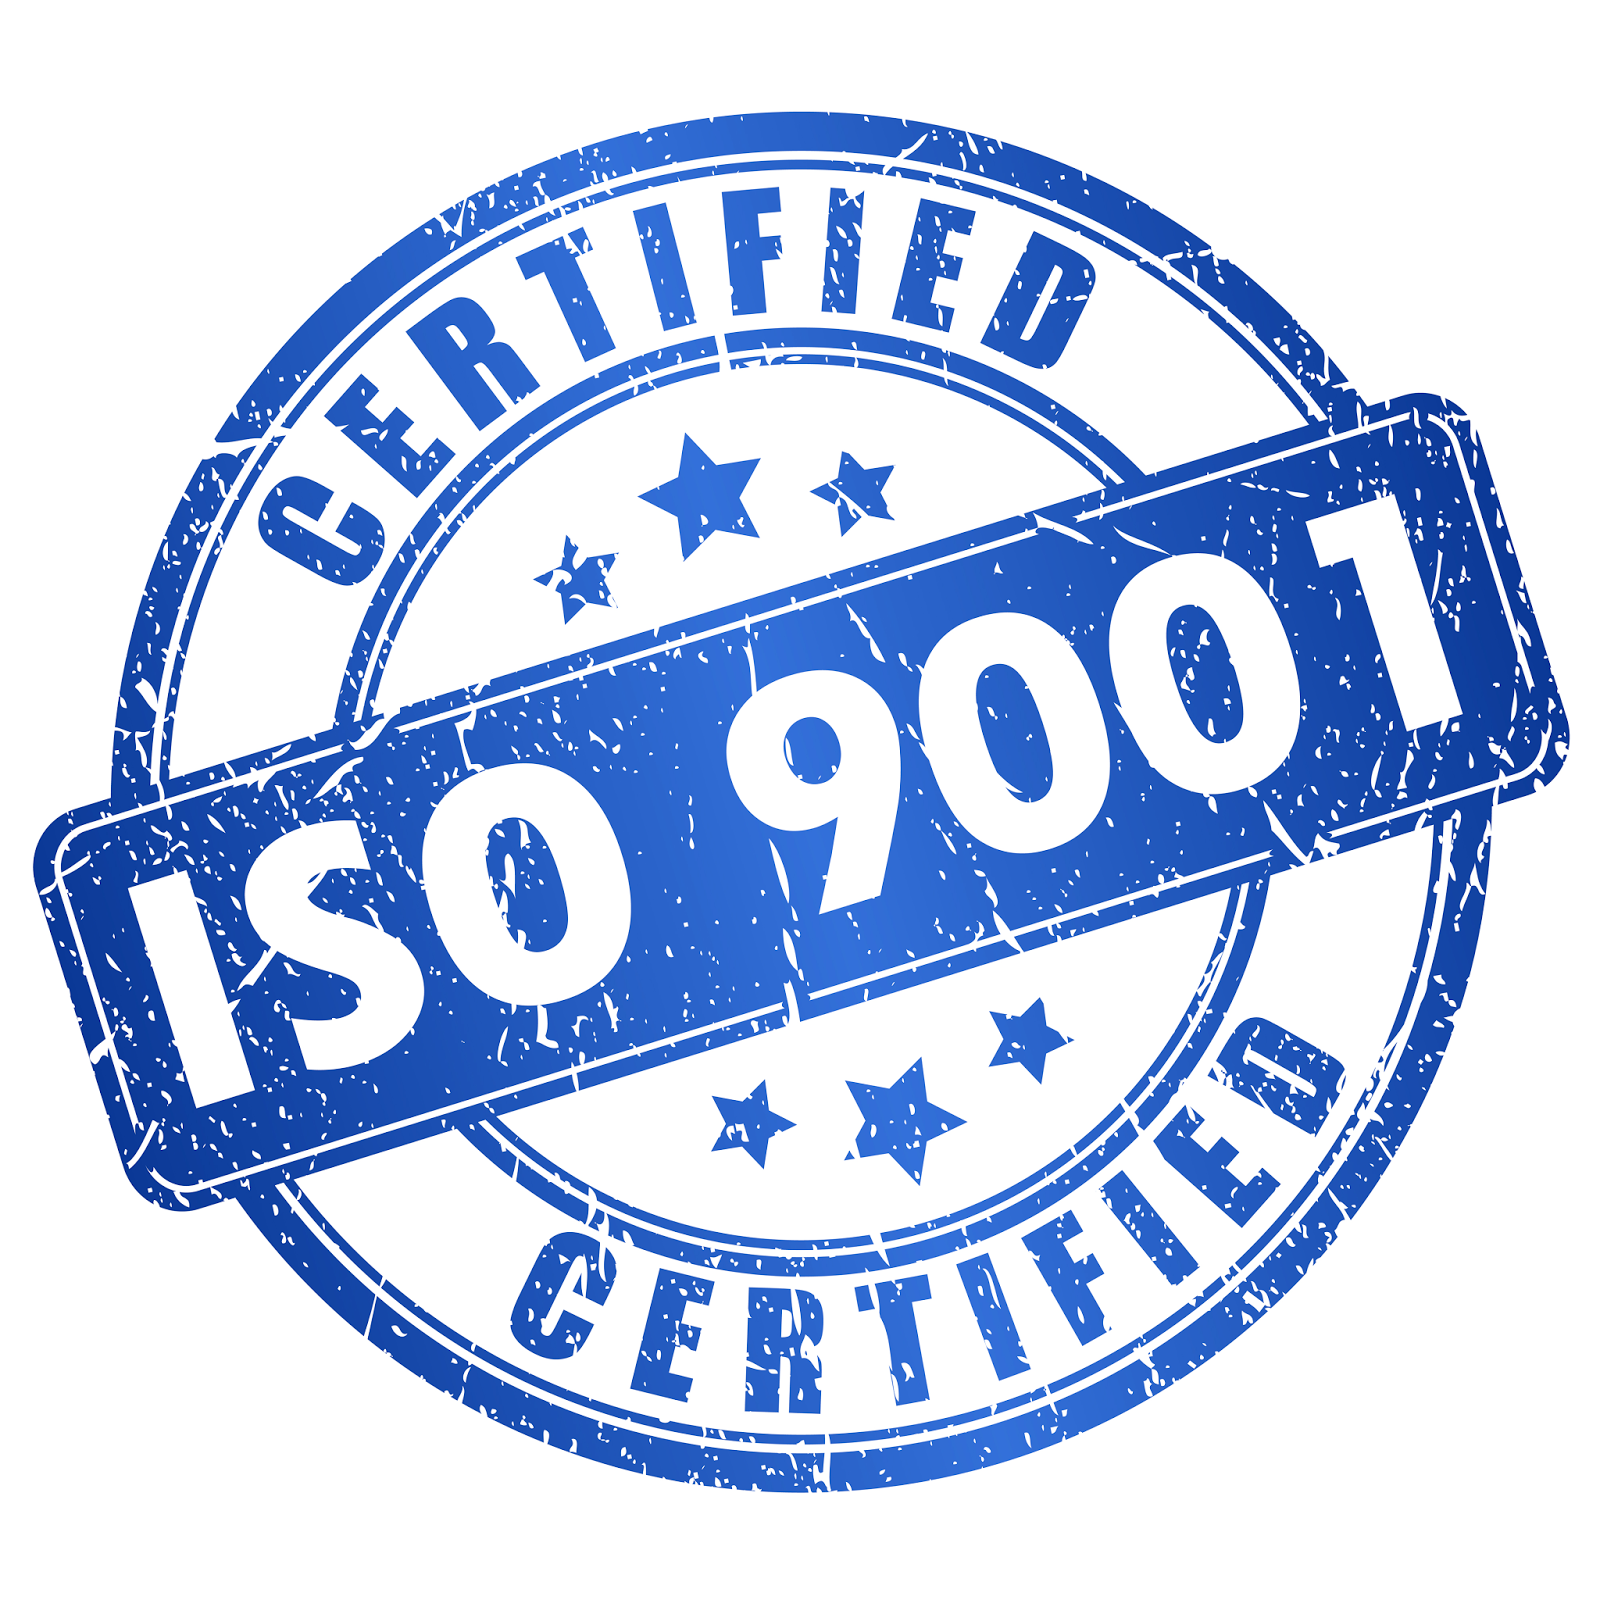 Iso 9001 certification Logos.